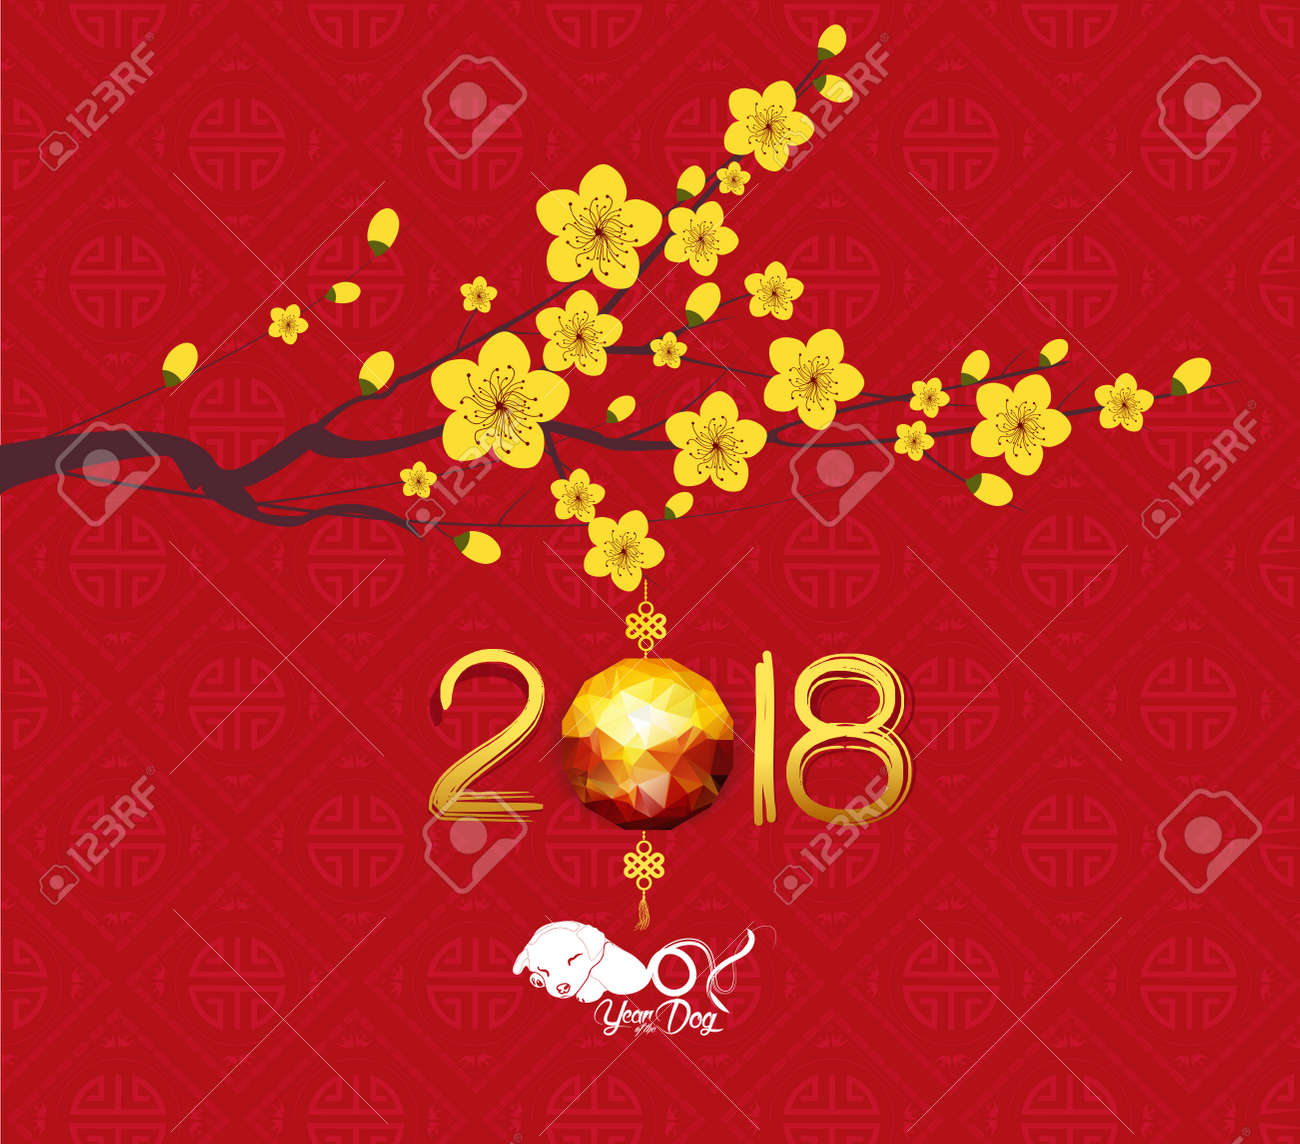 oriental chinese new year 2018 lantern background year of the dog stock vector 85033731